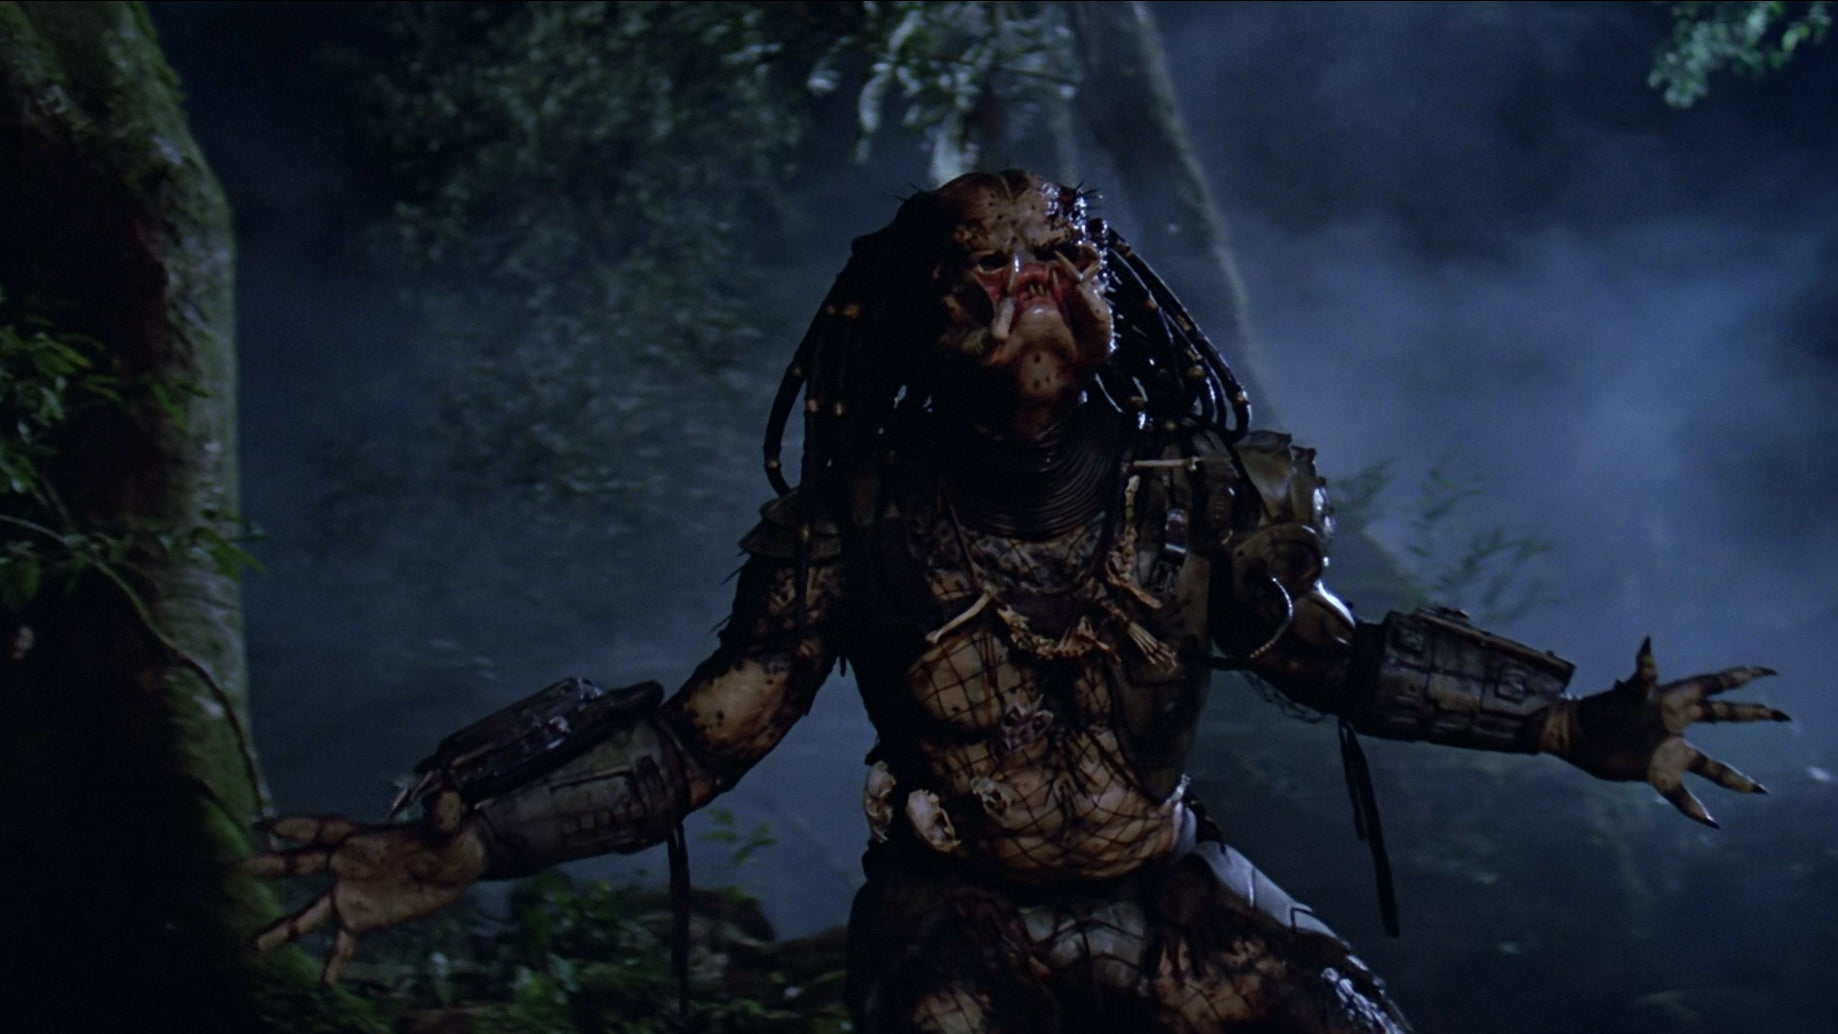 predator - photo #11